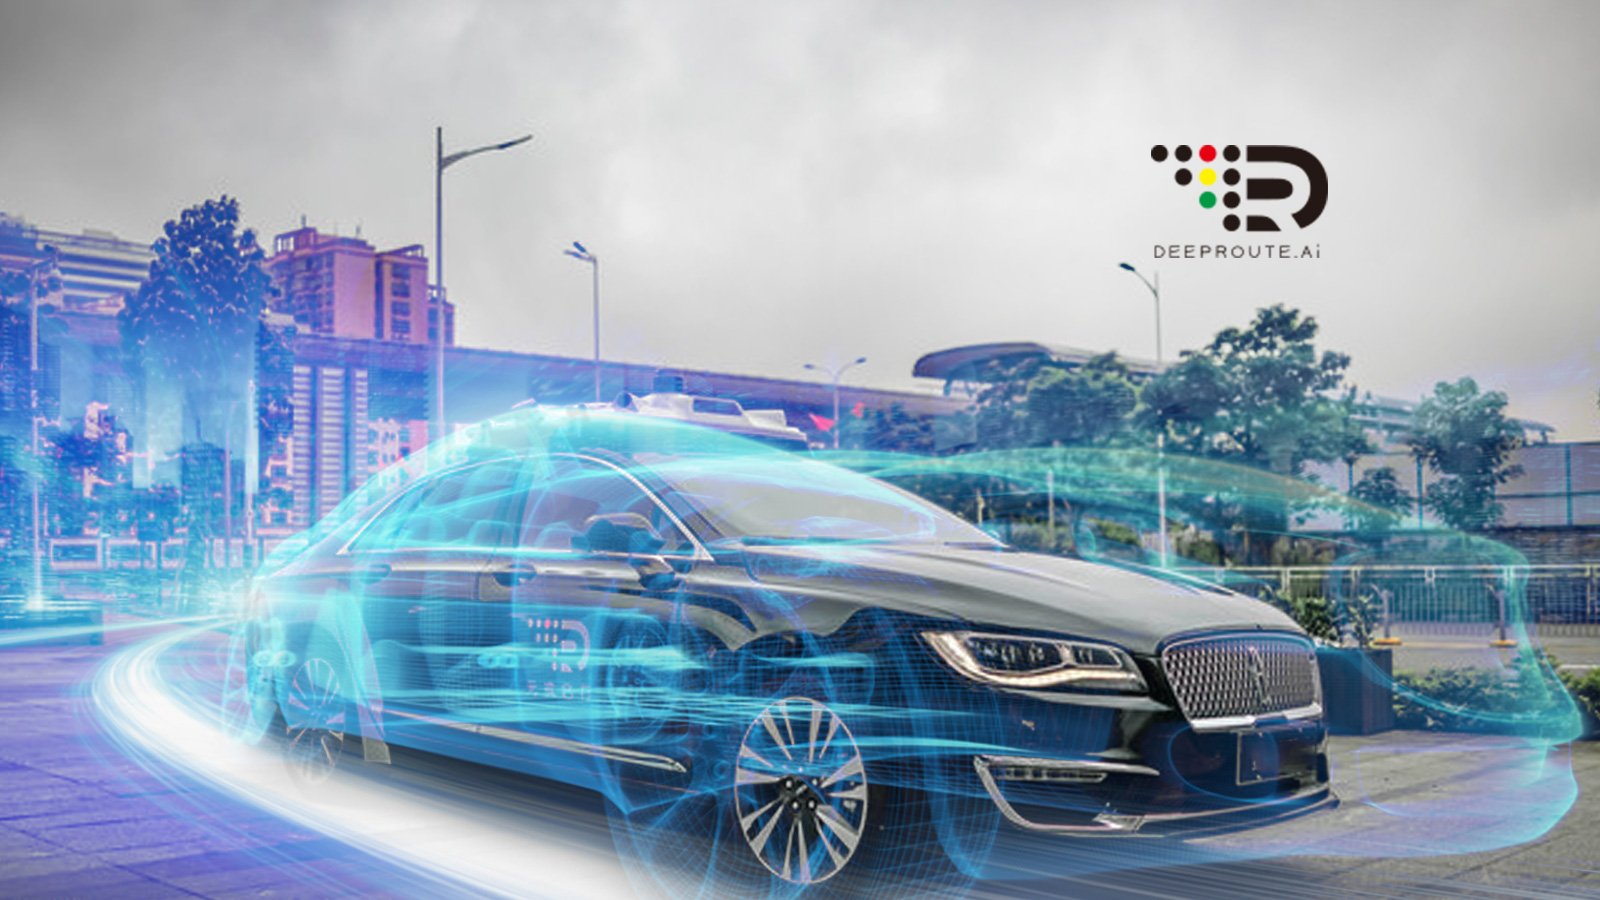 Alibaba Group, the worldwide leader in online trade, has invested over 300 million USD into DeepRoute.ai, a Chinese startup company developing software for autonomous vehicles, as its first step towards creating its own robotaxi network.